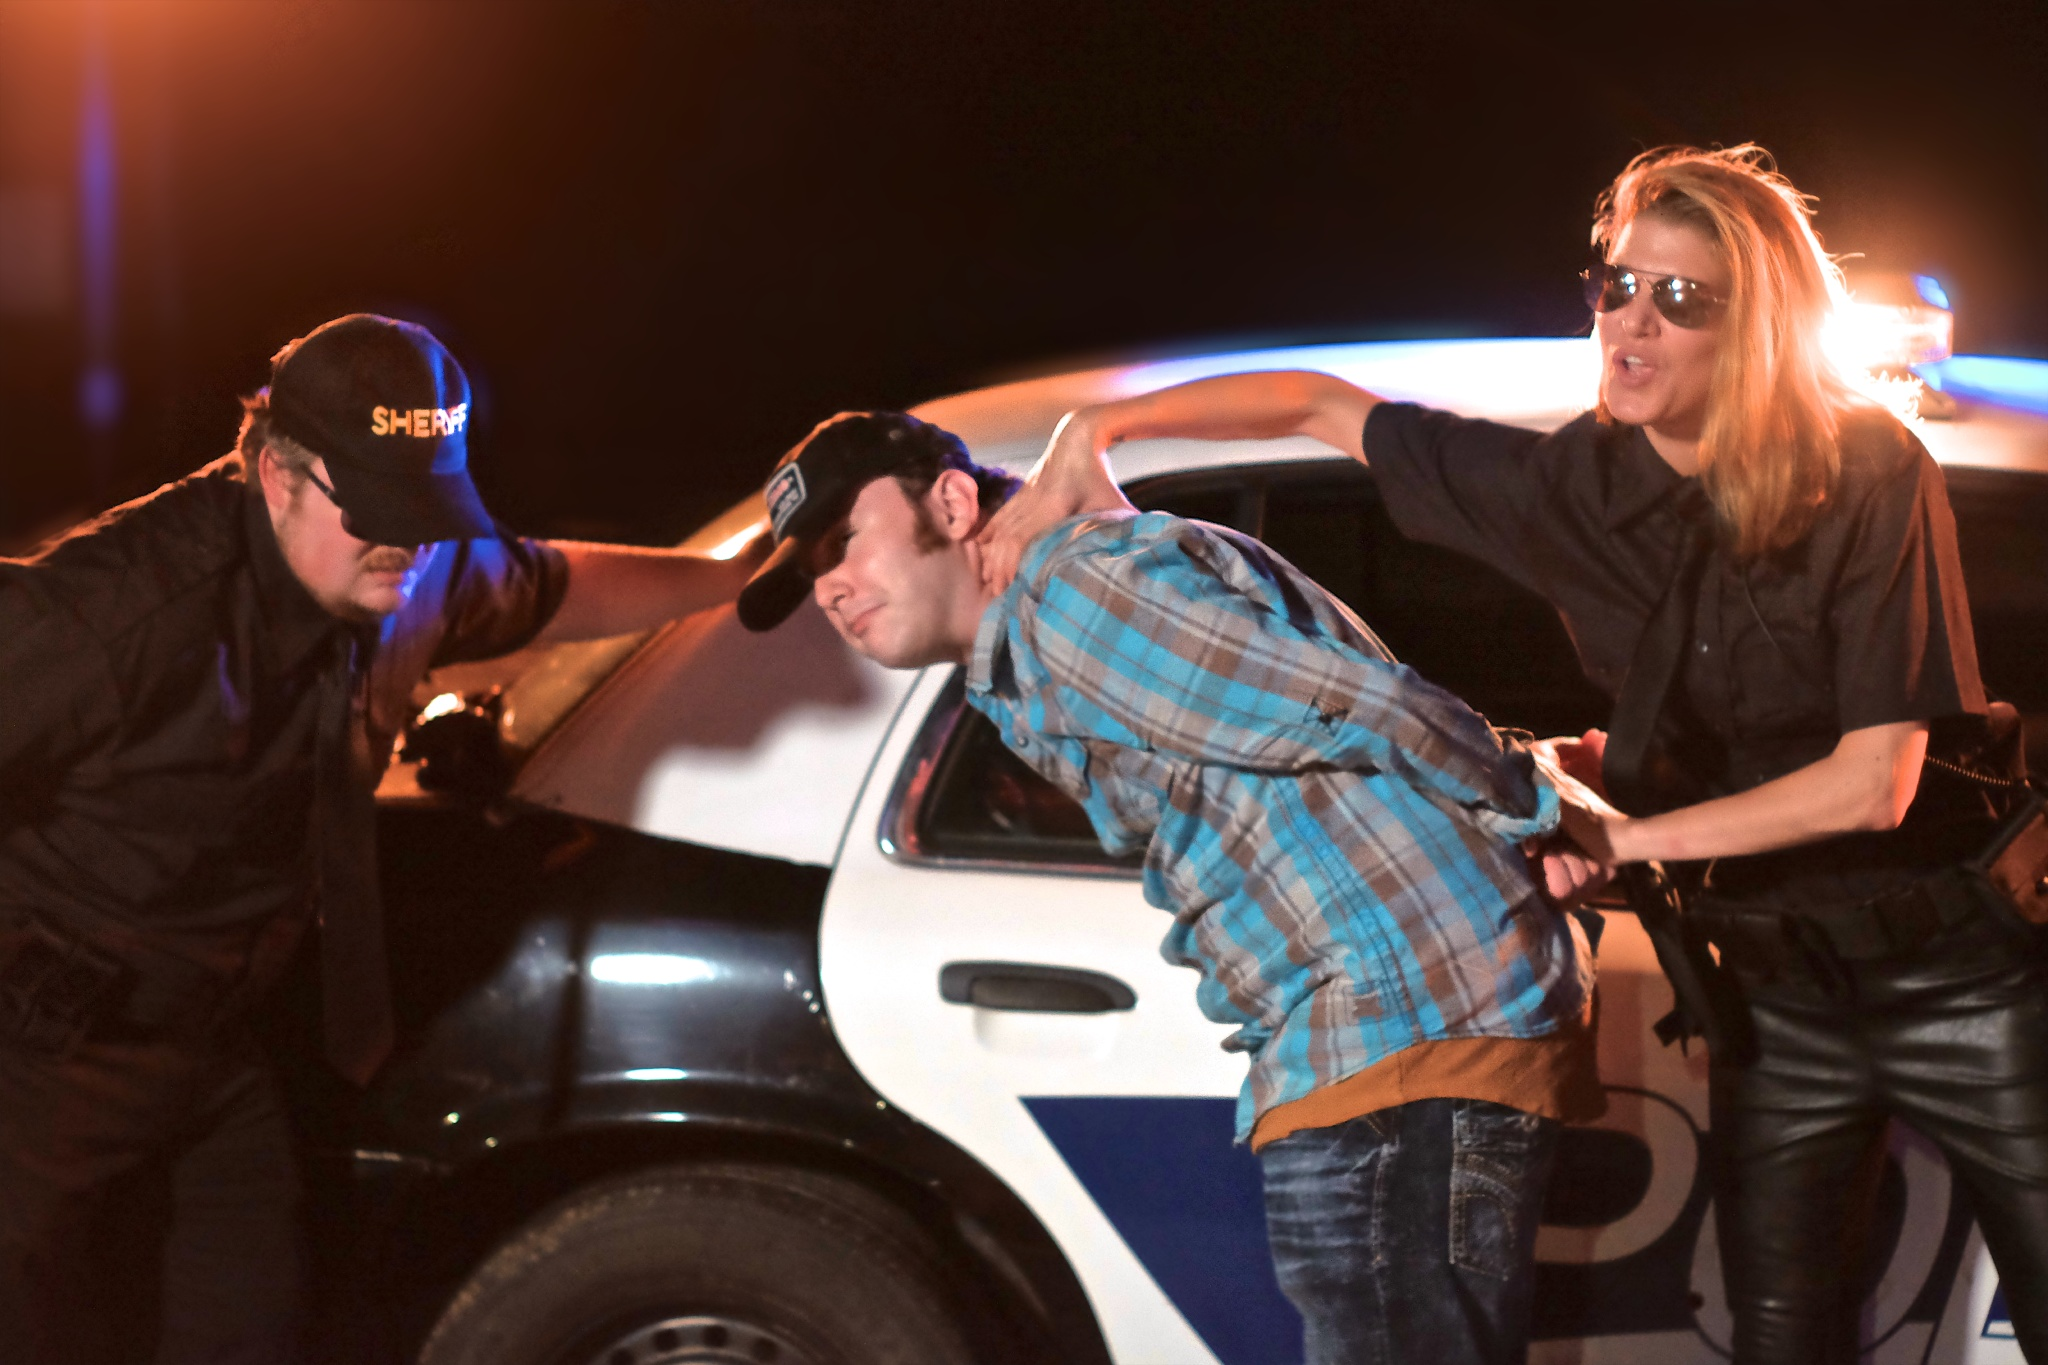 Police enjoying the arrest in a promo shot from the set of Nick Brennan's music video Buck Naked